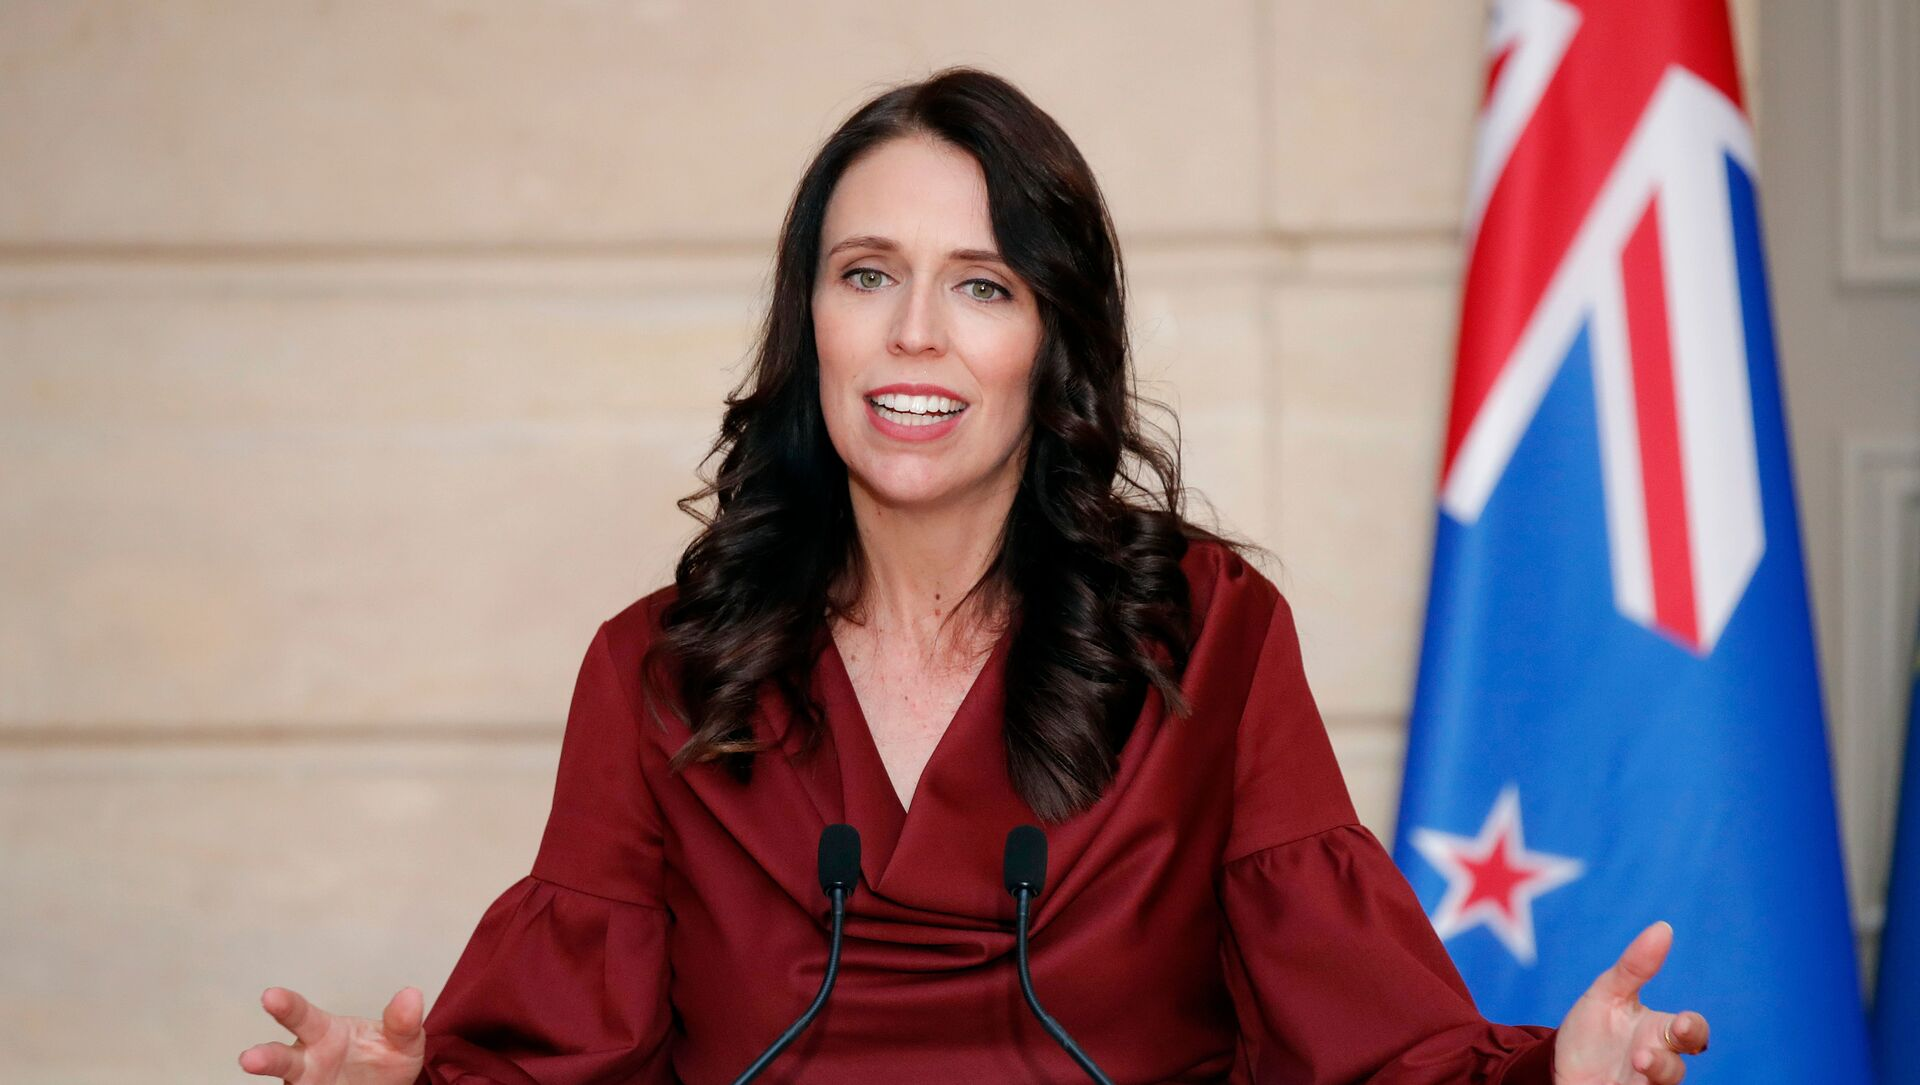 New Zealand Prime Minister Jacinda Ardern gestures as she speaks during a media conference with French President Emmanuel Macron, at the at the Elysee Palace in Paris, Monday, April 16, 2018 - Sputnik Italia, 1920, 12.03.2021